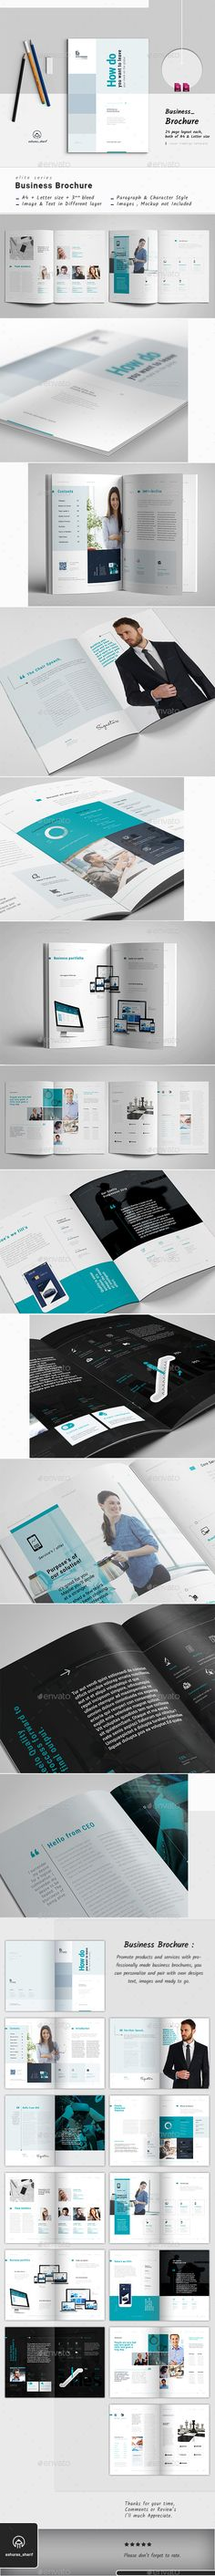 Brochure Template InDesign INDD - 24 Pages A4 and US Letter Size